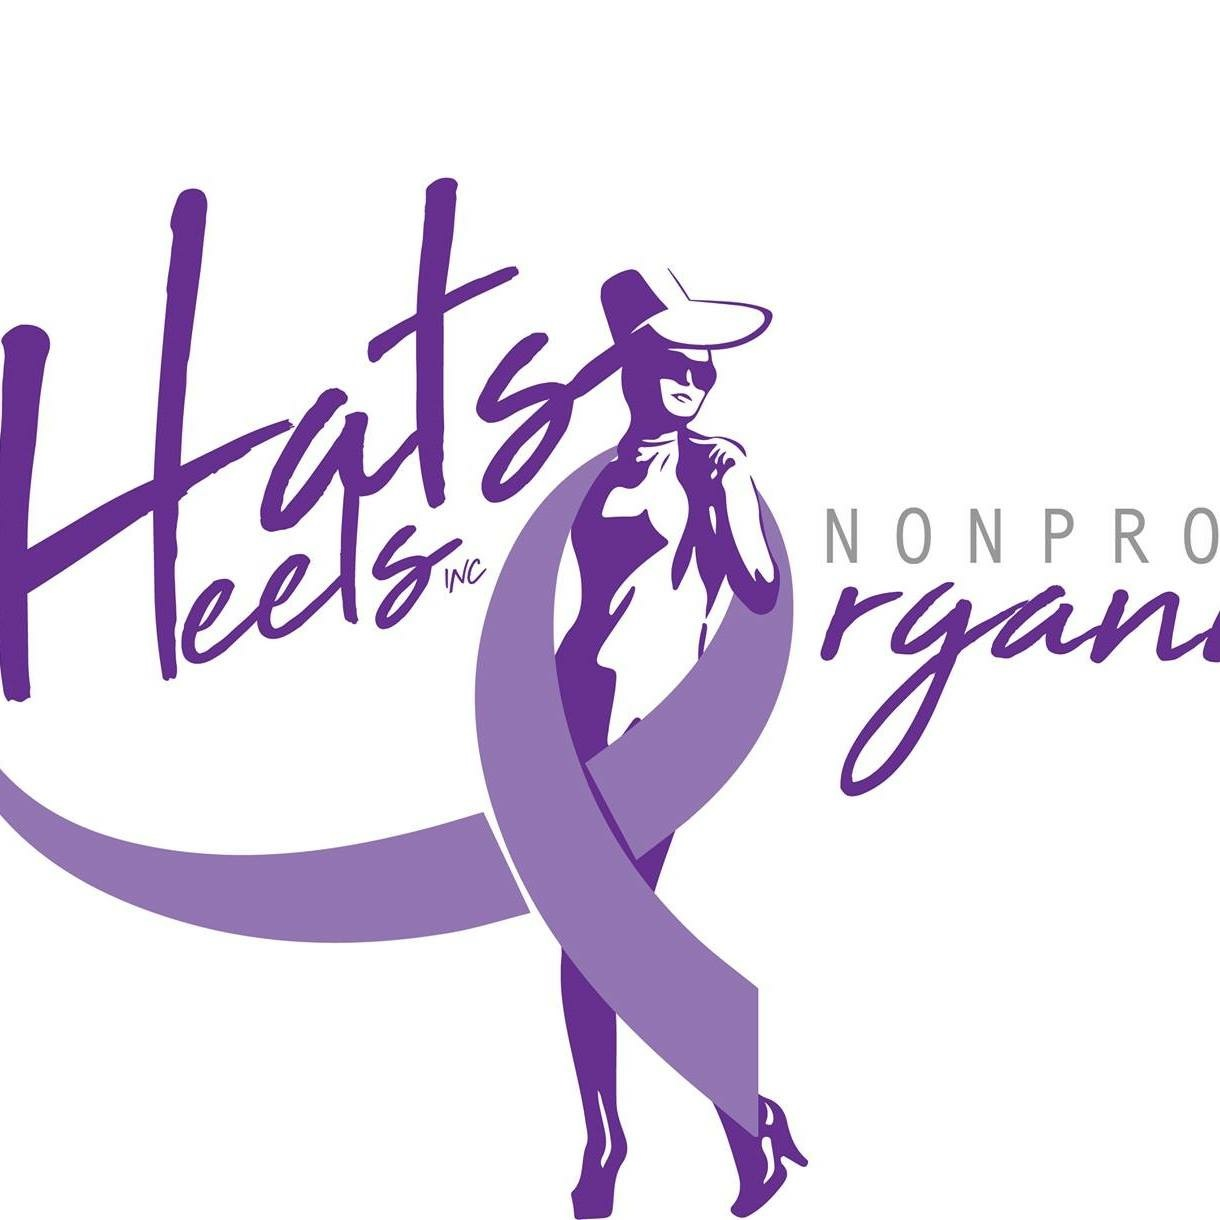 hats and heels logo.JPG .JPG